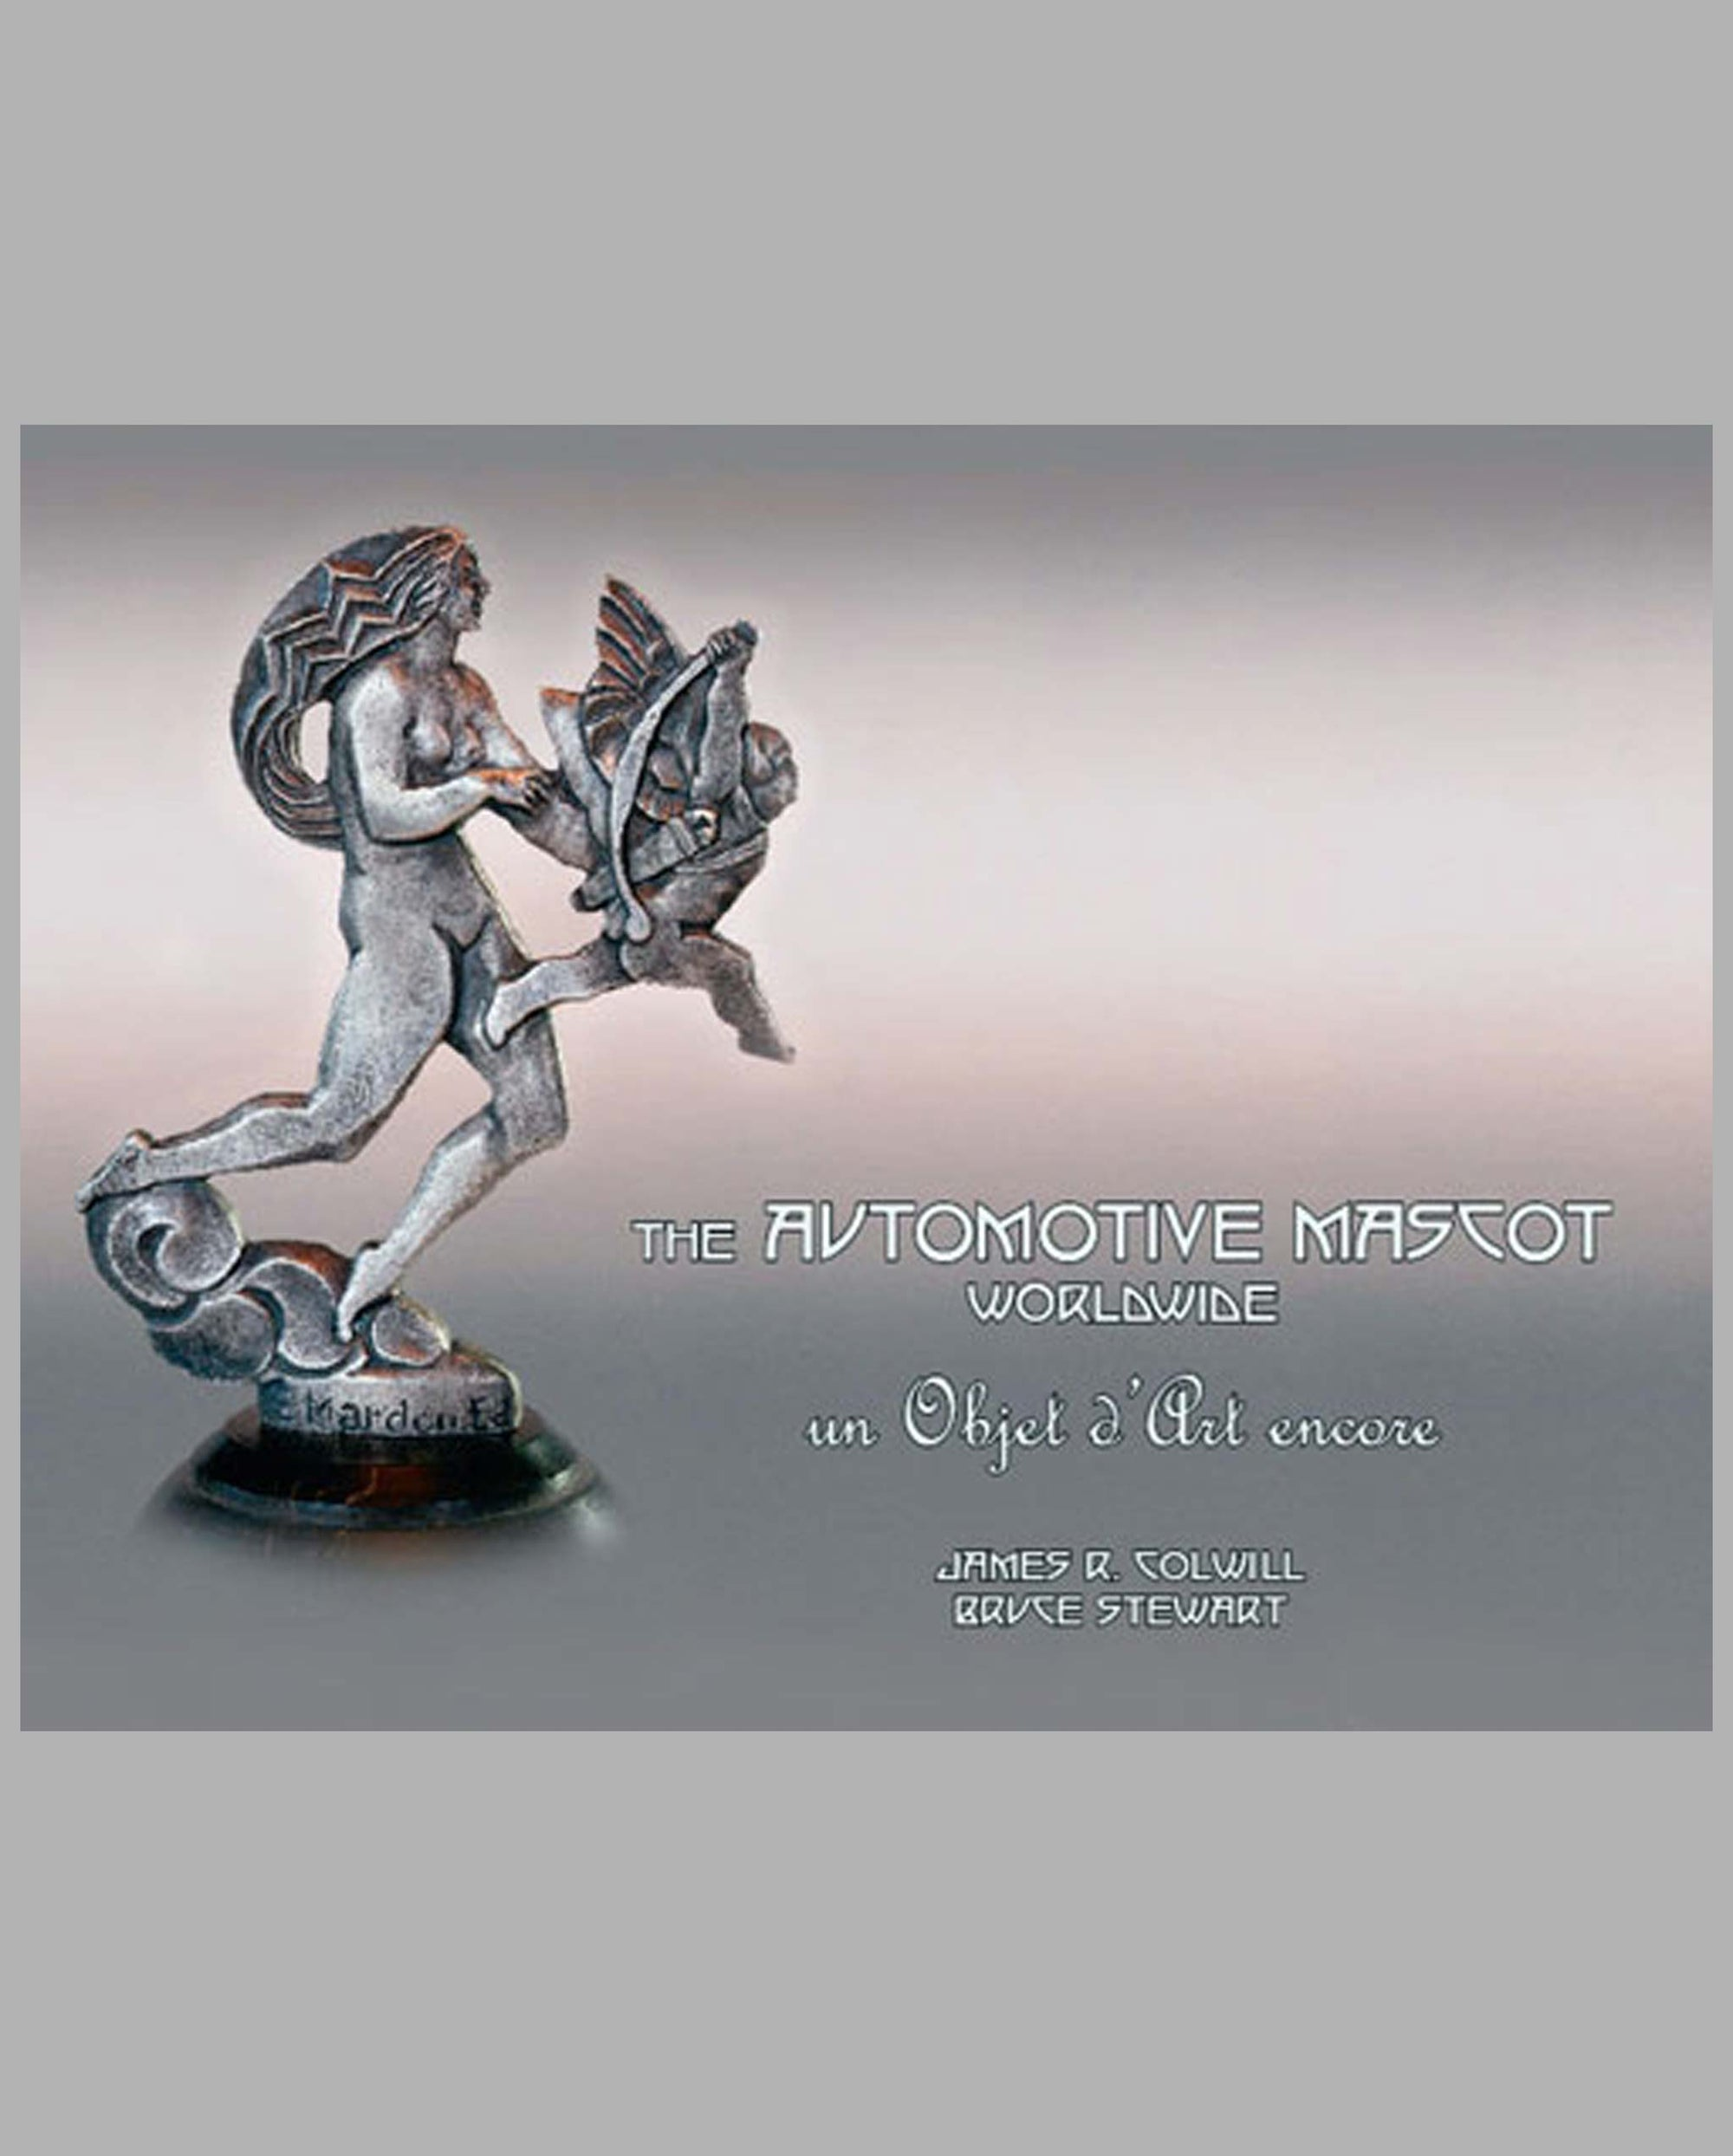 The Automotive Mascot, Worldwide, un Objet d' Art encore, by James R. Colwill (Volume 5)